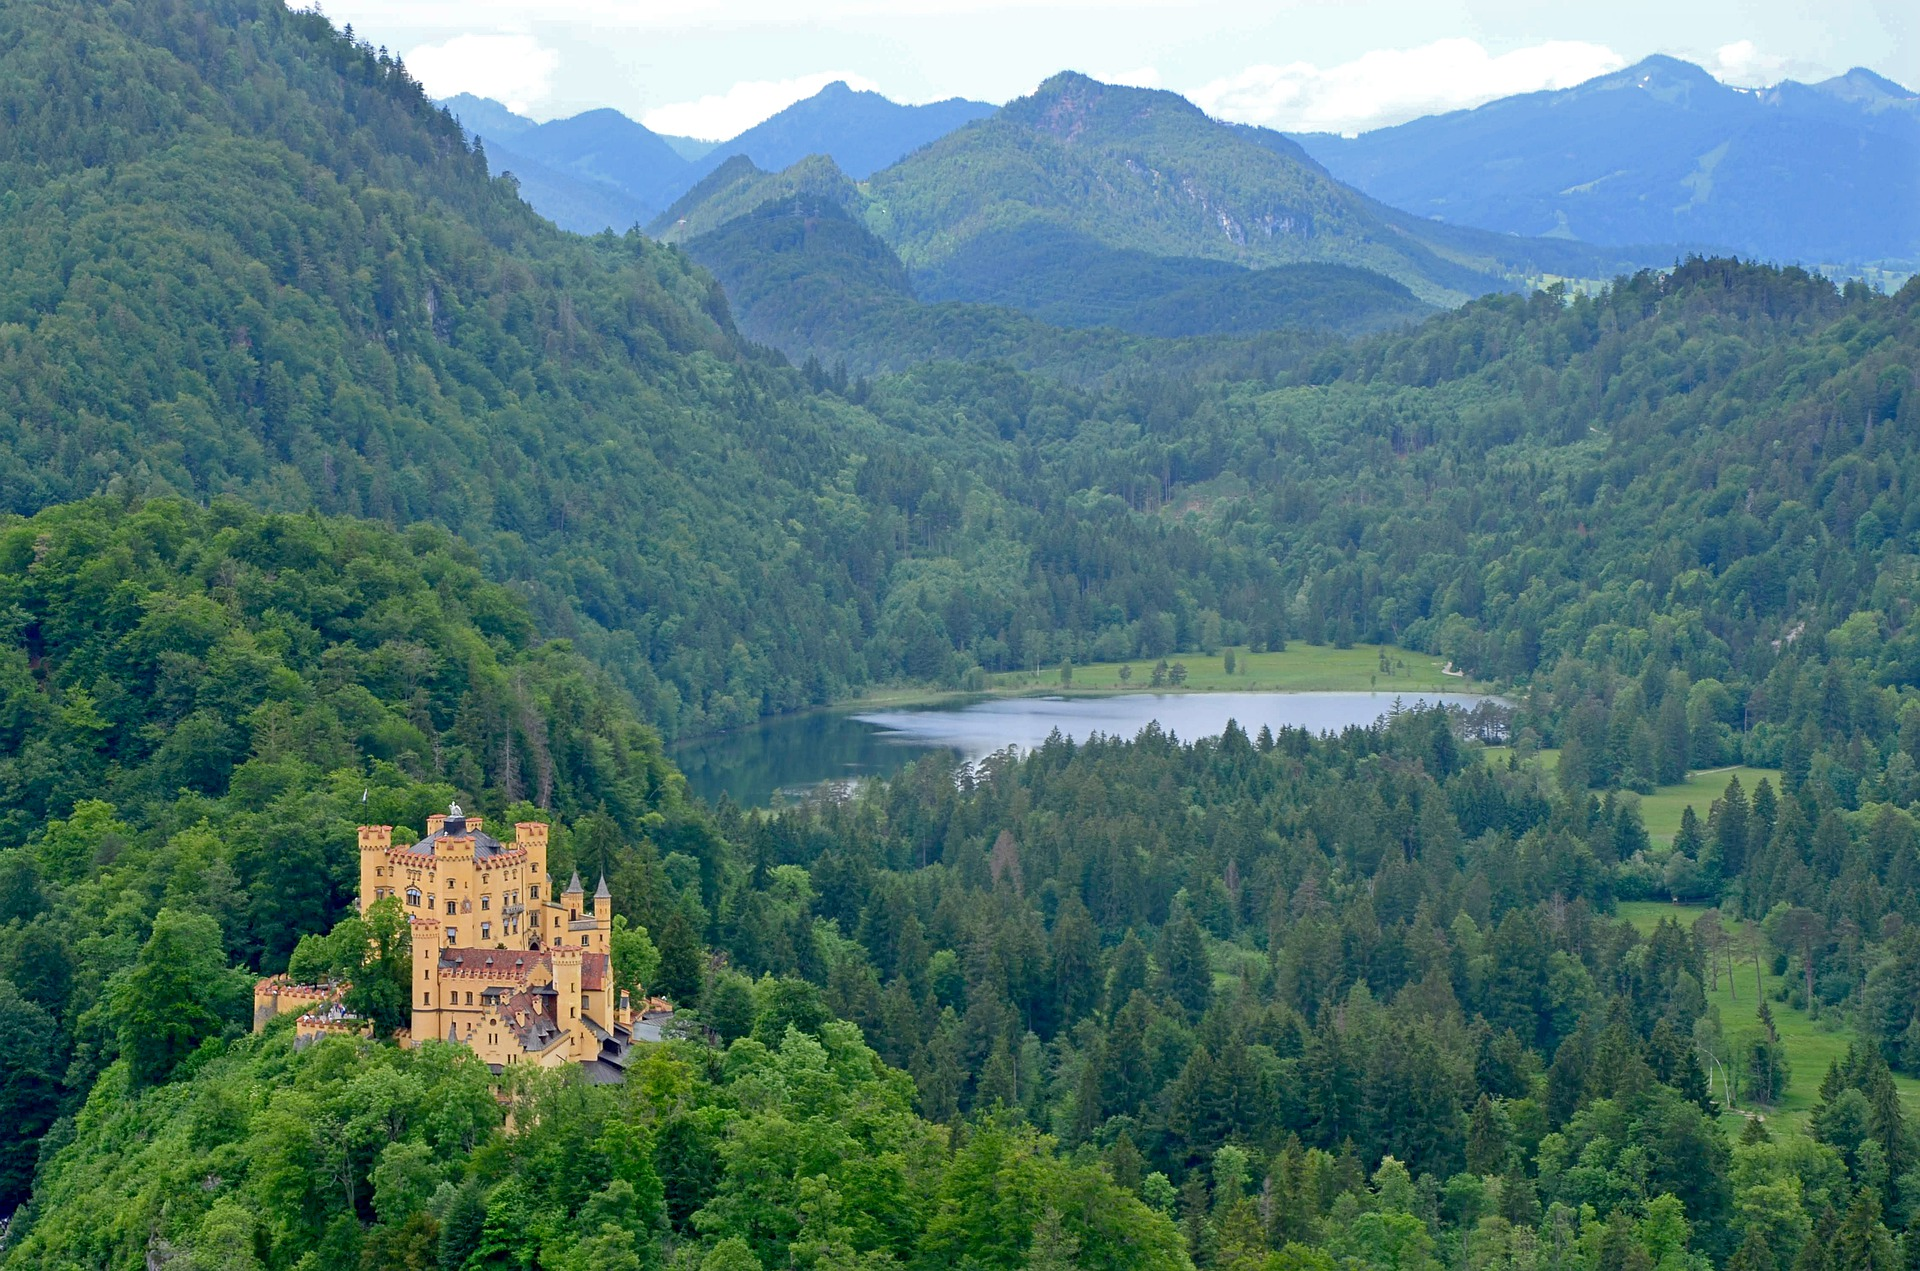 Castle in Germany surrounded by forests and hills and lake